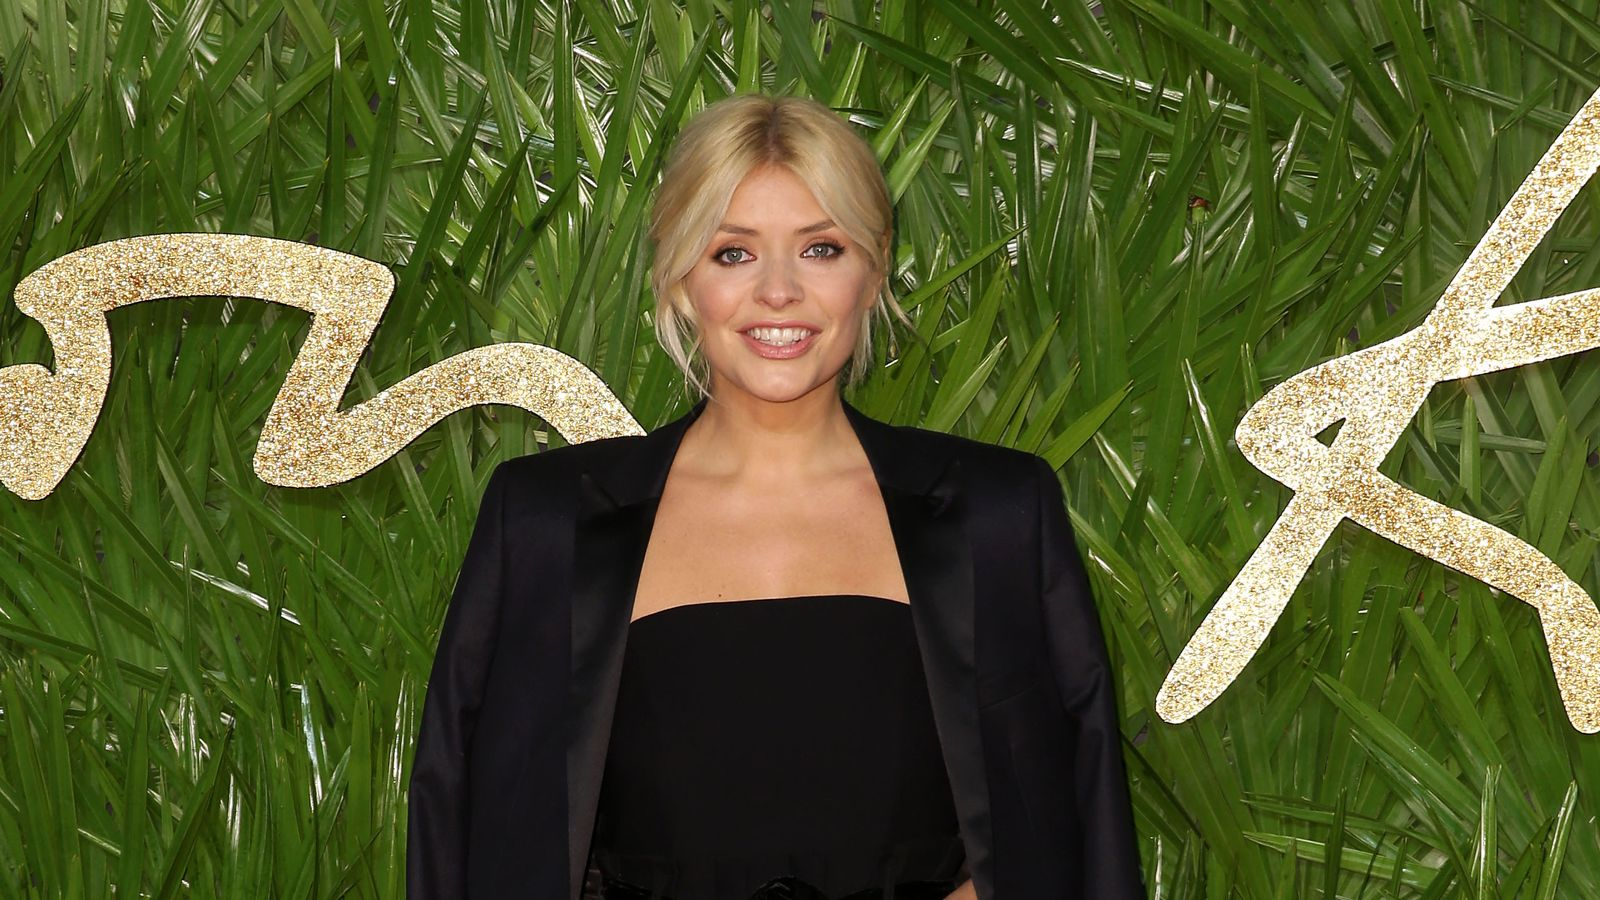 Will Holly Willoughby Replace Ant McPartlin On TV This Autumn